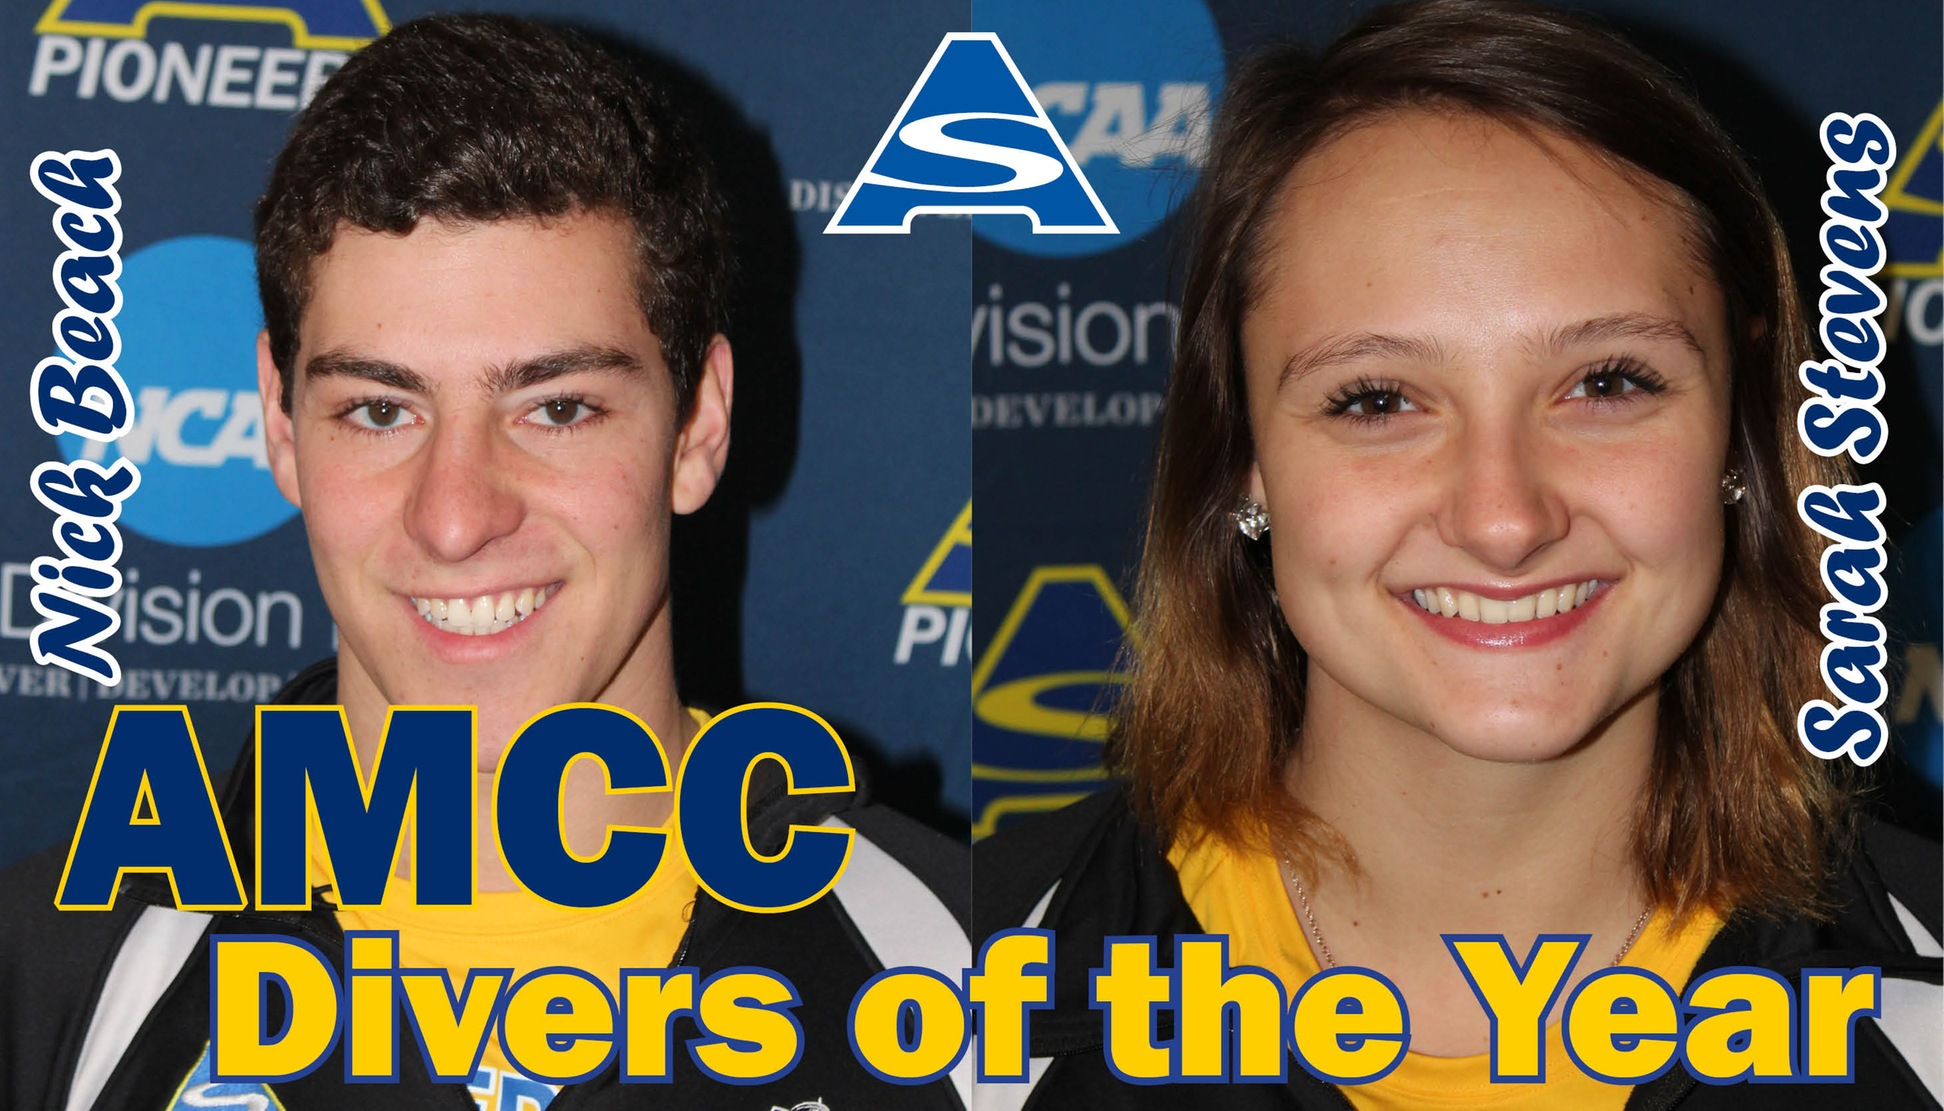 AMCC Divers of the Year, Nick Beach & Sarah Stevens